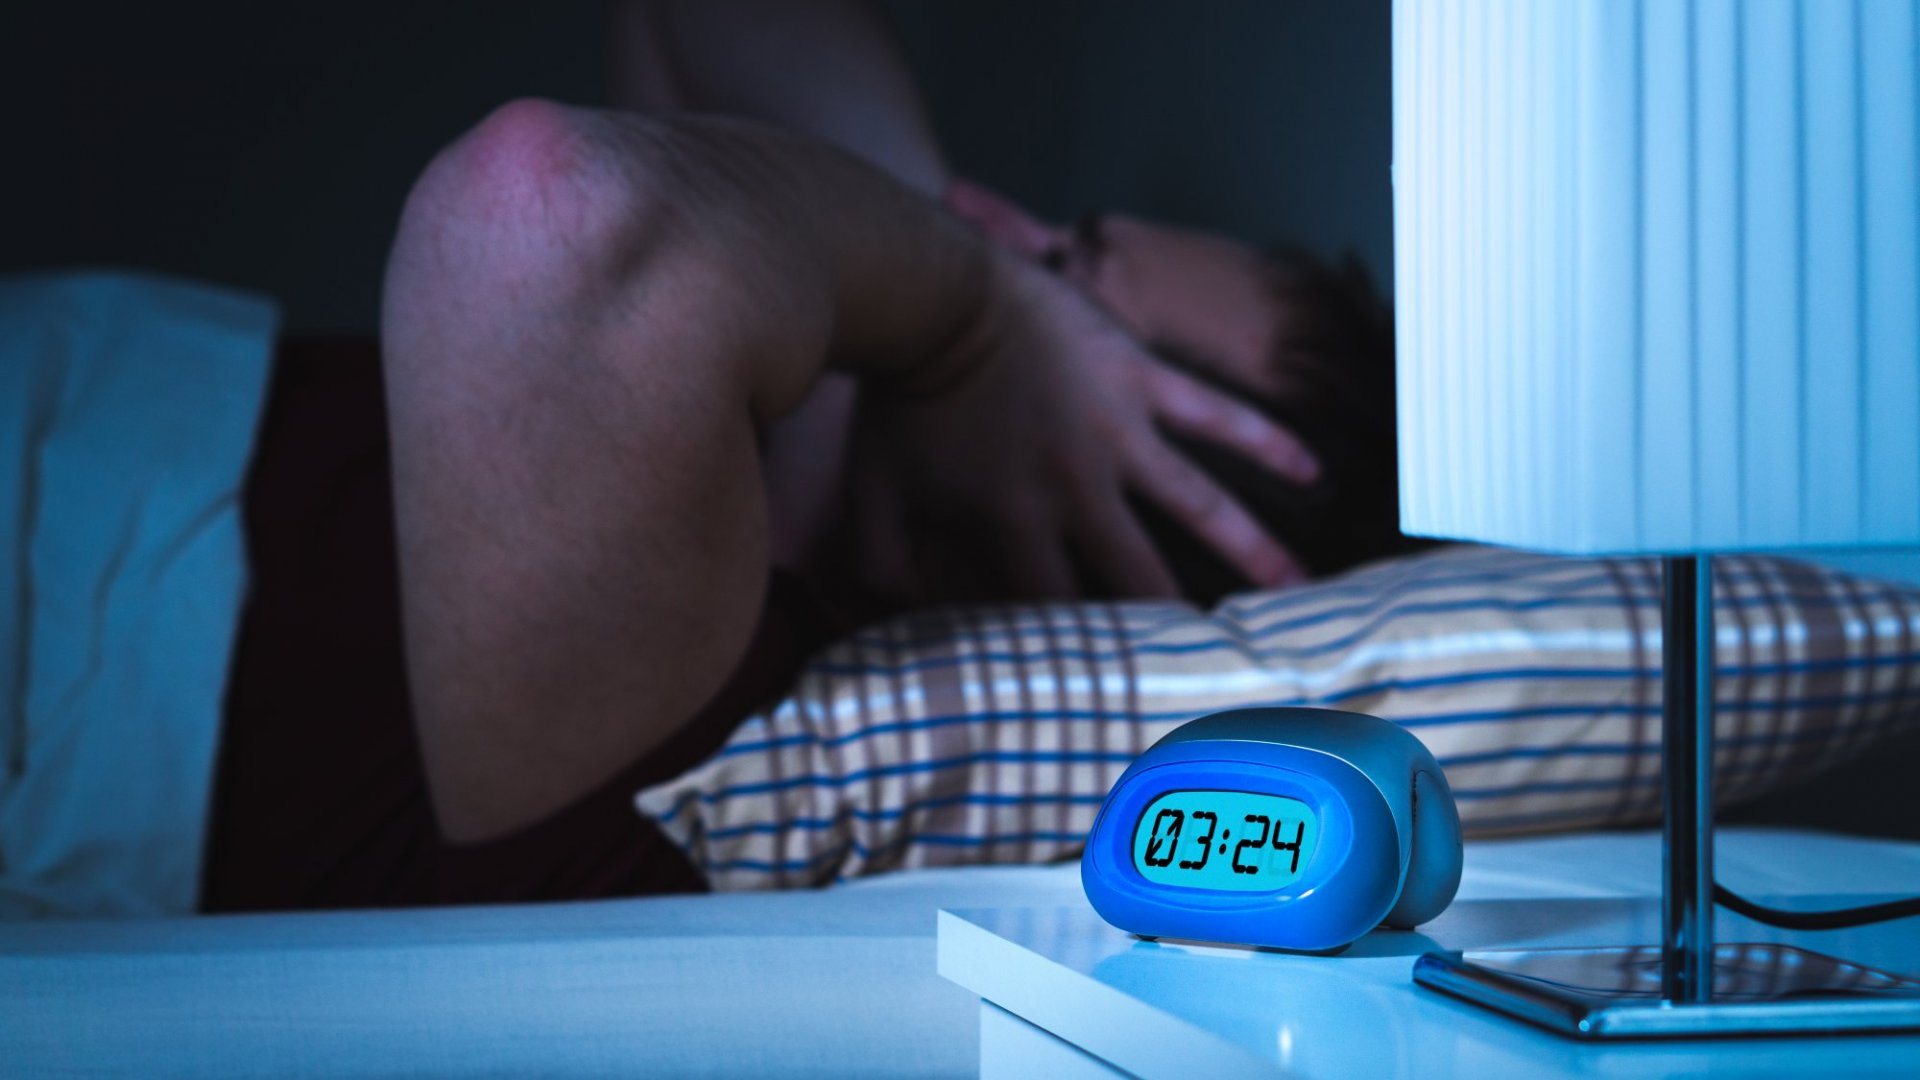 You Sacrifice Sleep at the Risk of Adding More of this Very Negative Emotion to Your Day